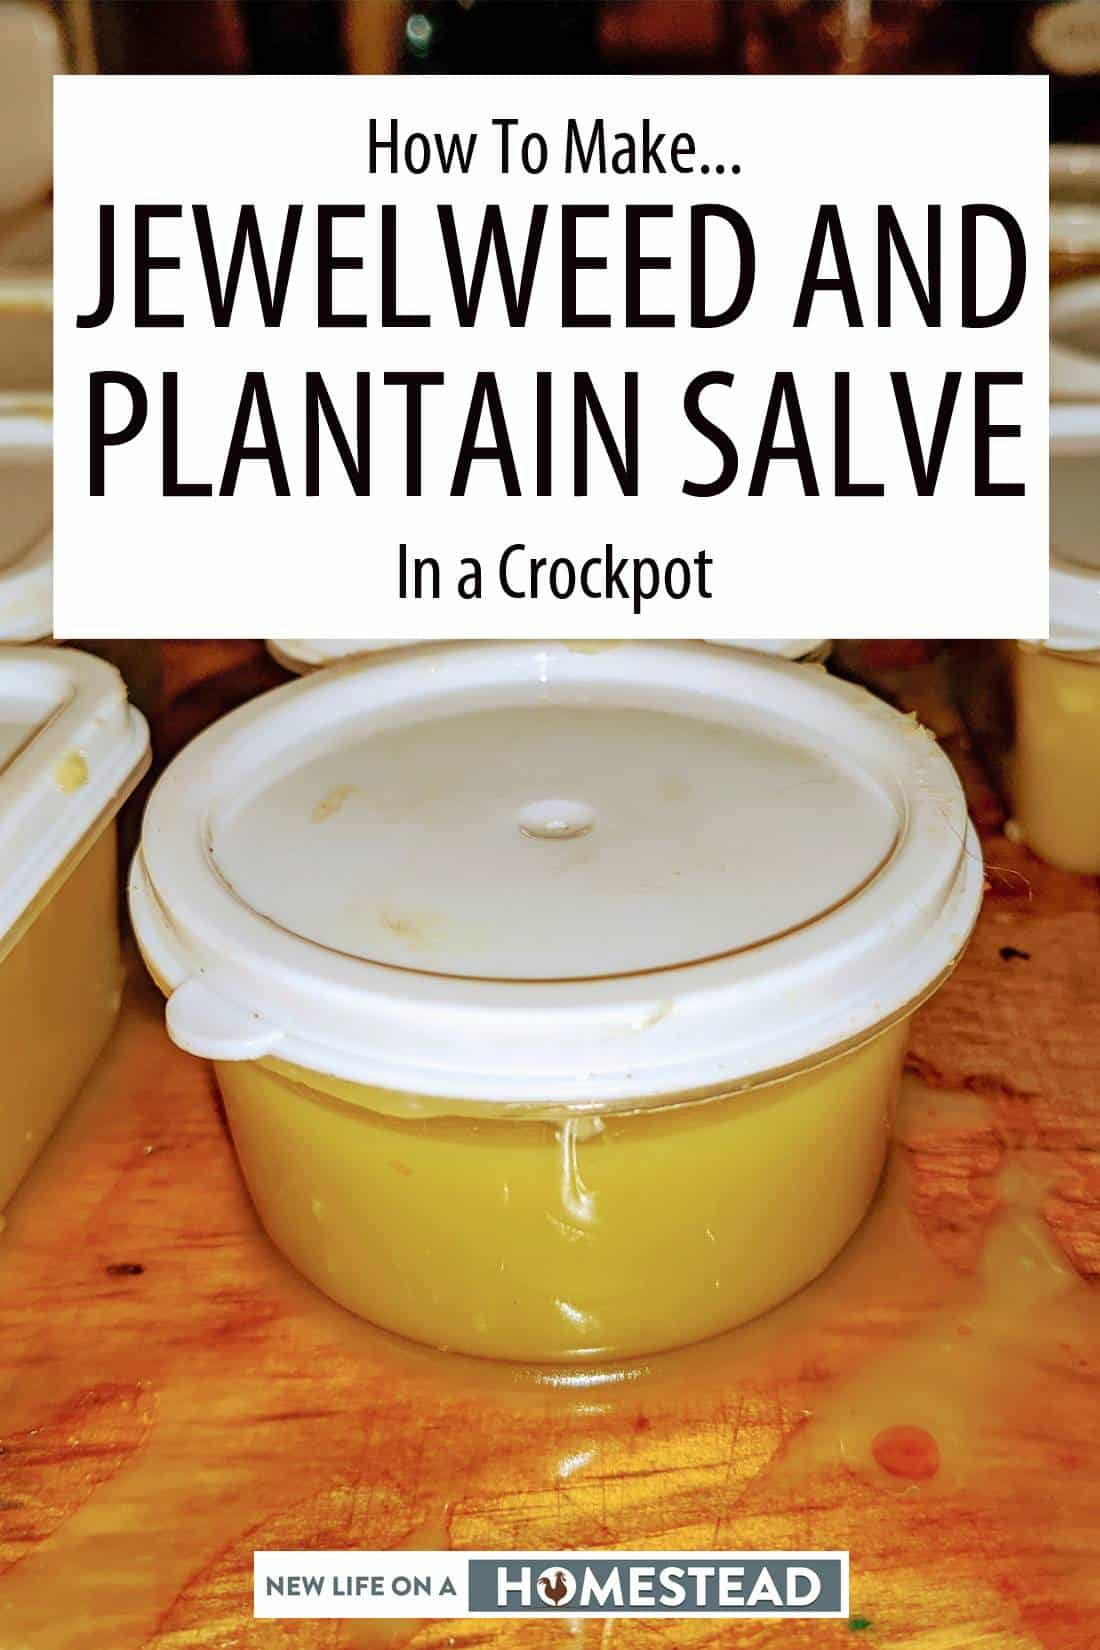 jewelweed and plantain salve pinterest